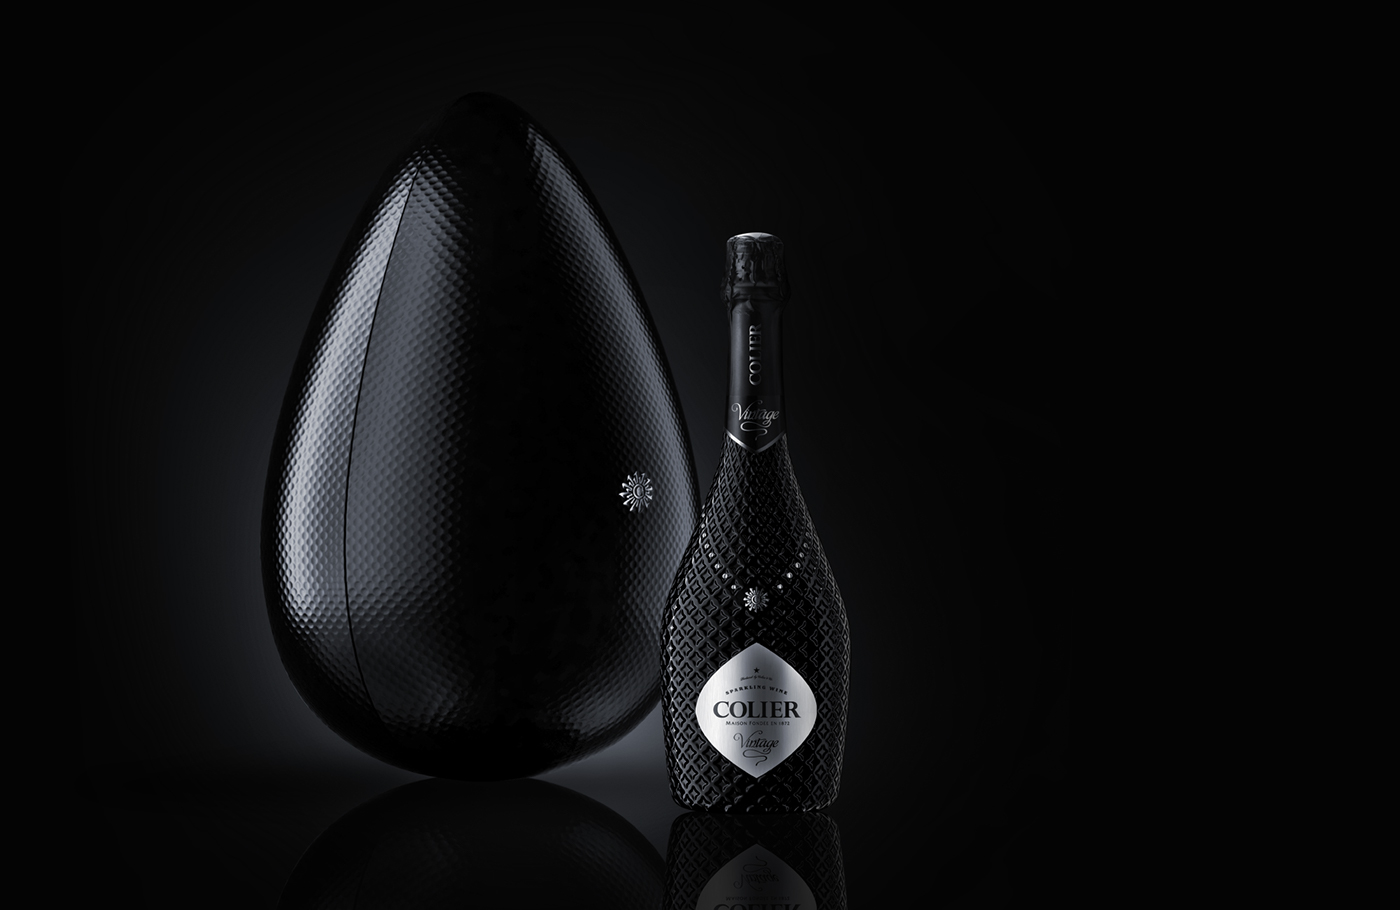 Champagne sparkling wine Pack package bottle business women Collection Cocoon handmade bottle wine colier collar jewelry brandbook winery